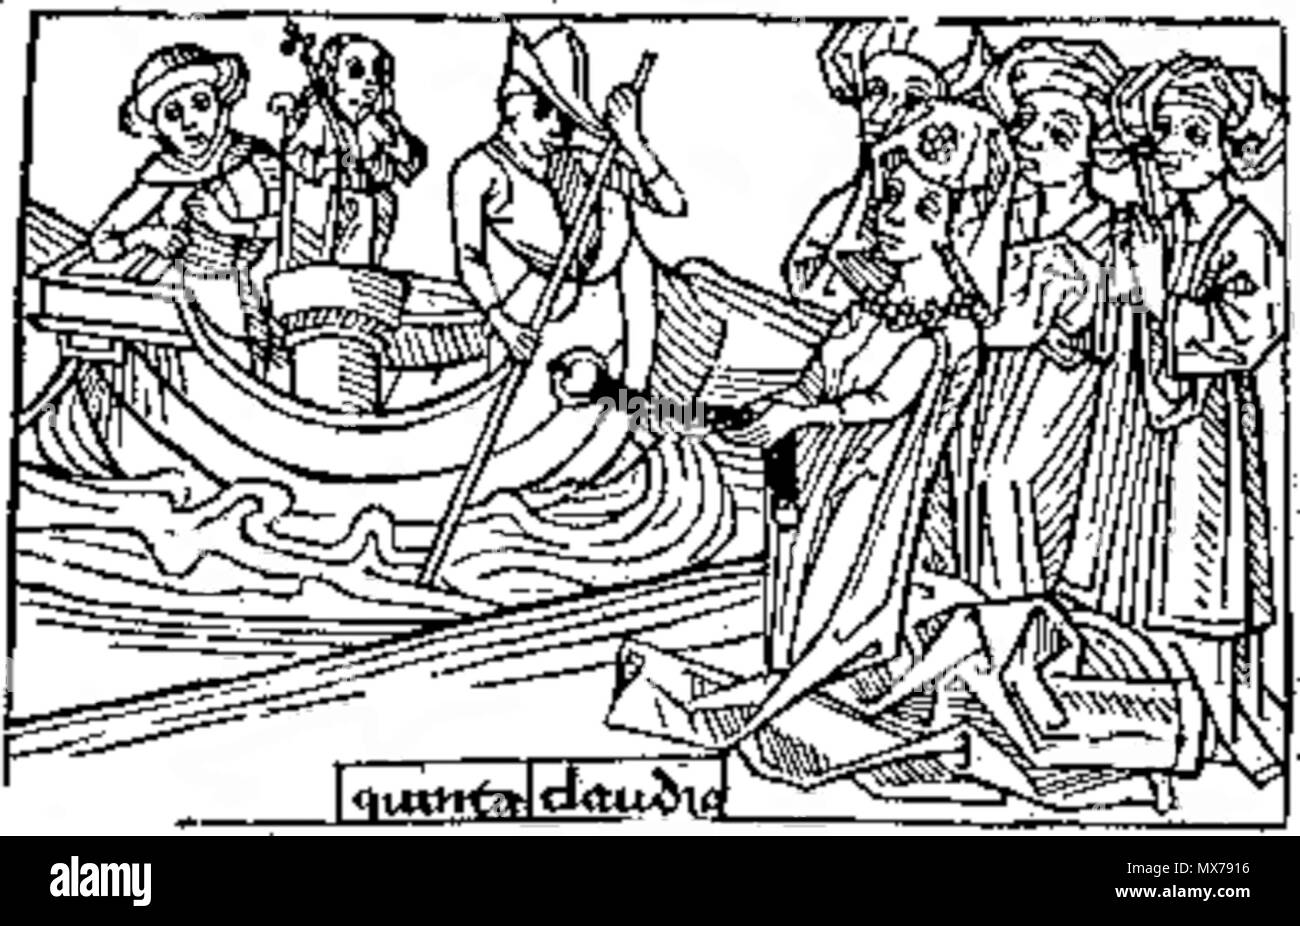 . Claudia Quinta, roman legend woodcut from late medieval period . Unknown date. Unknown 133 Claudia Quinta - 2 - Stock Image